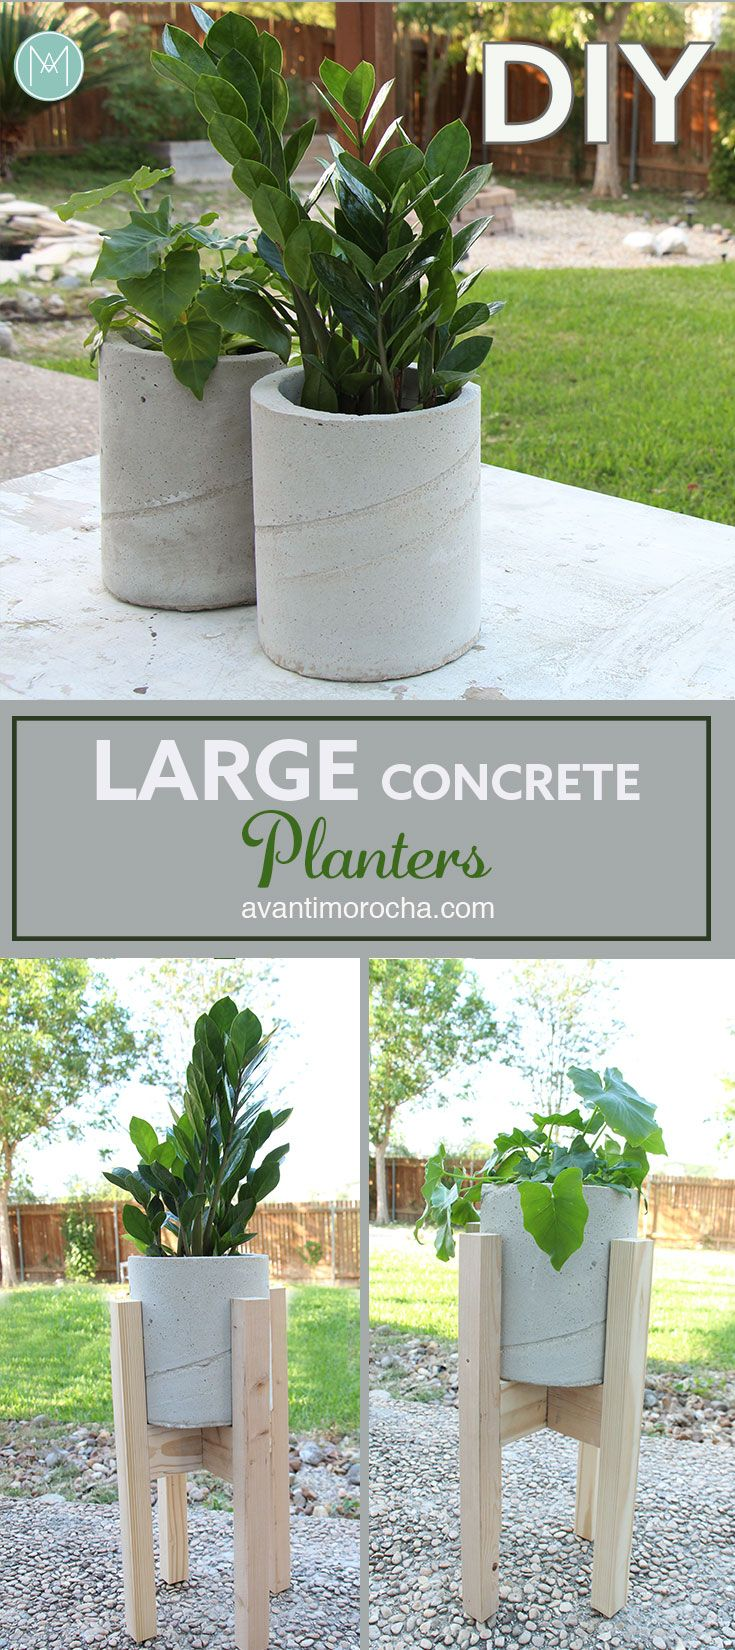 Diy Large Concrete Planters Diy Concrete Planters Concrete Diy Projects Large Concrete Planters